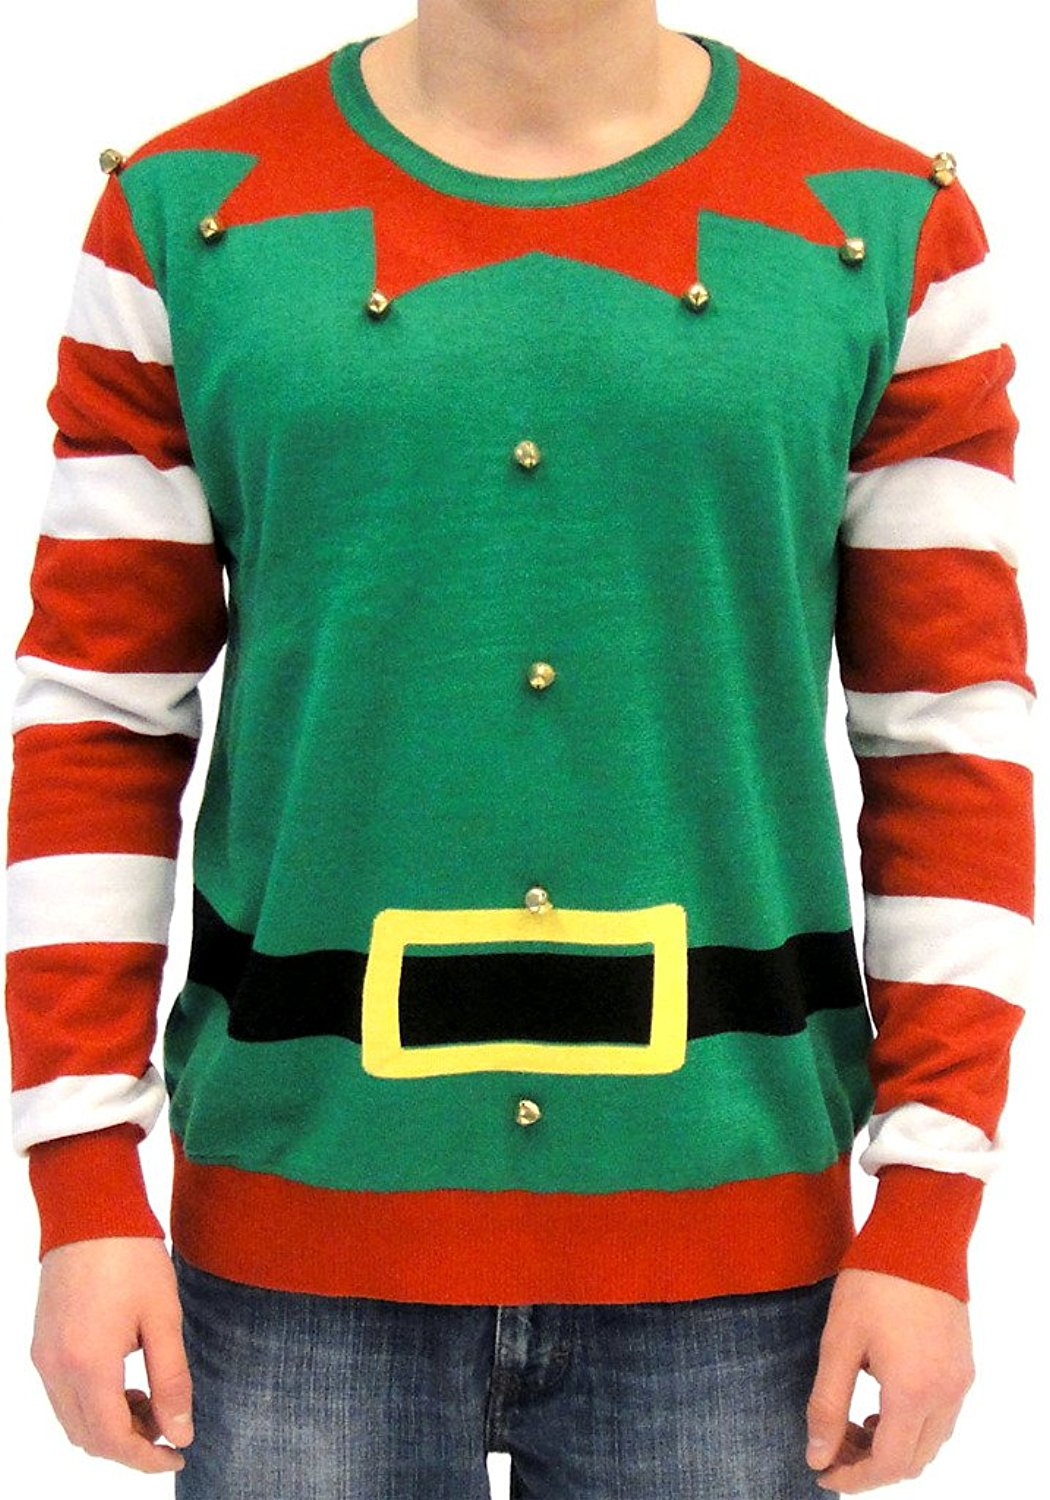 ugly christmas sweater elf with bells adult green and red costume sweater walmartcom - Ugly Christmas Sweater Elf